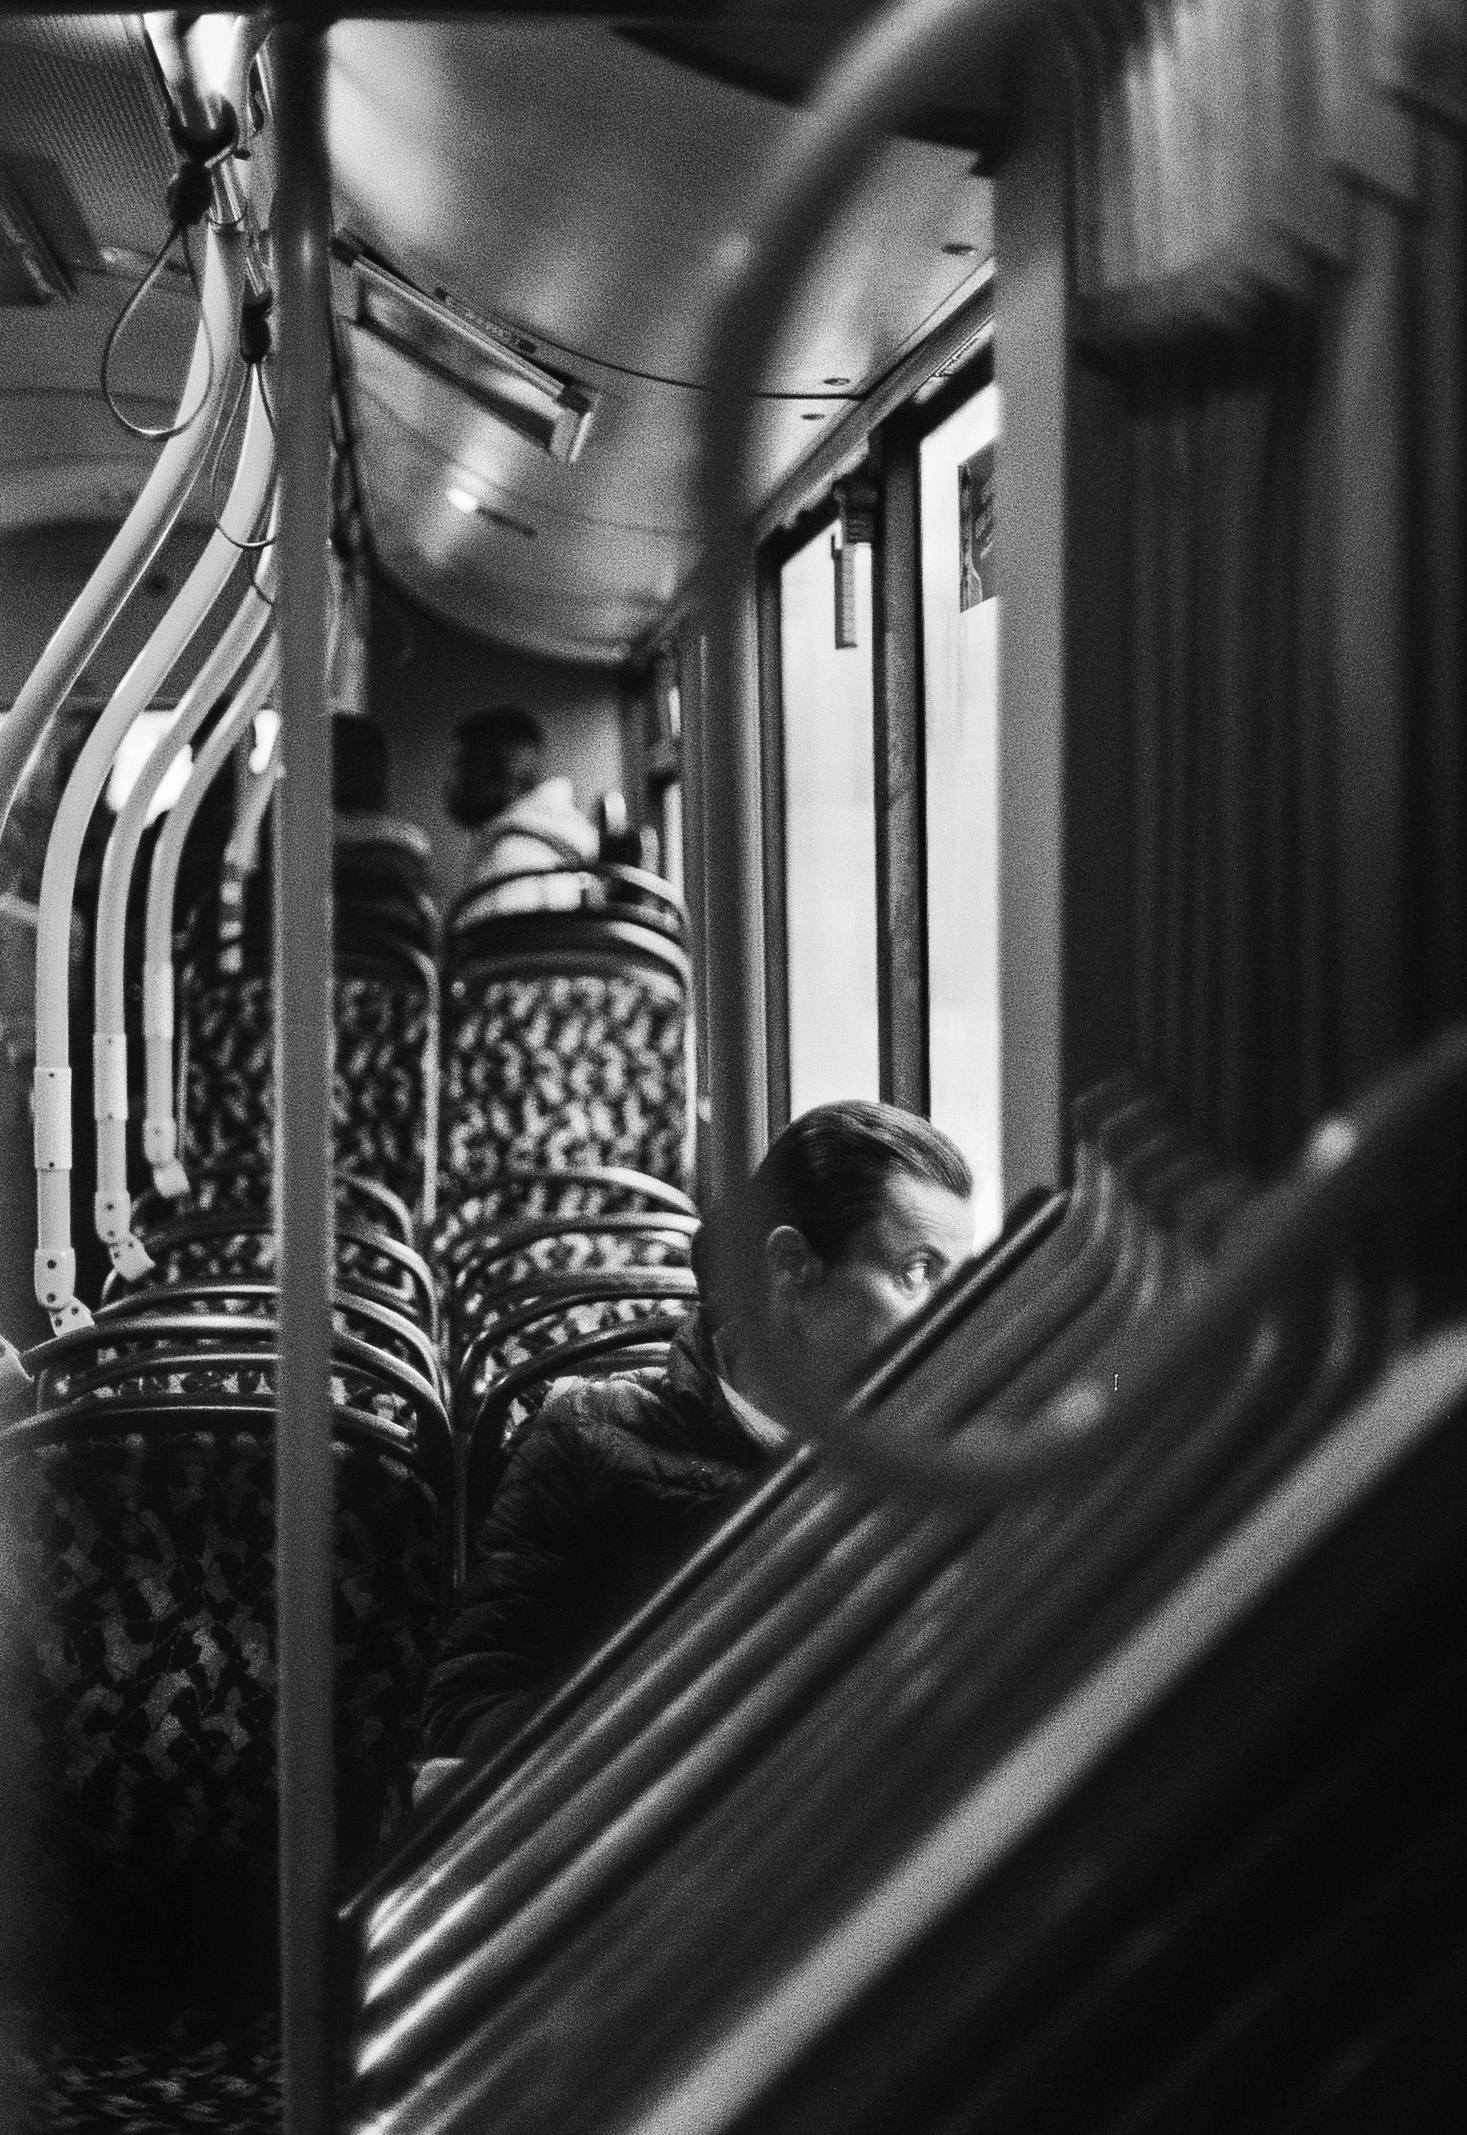 A Woman On The Bus